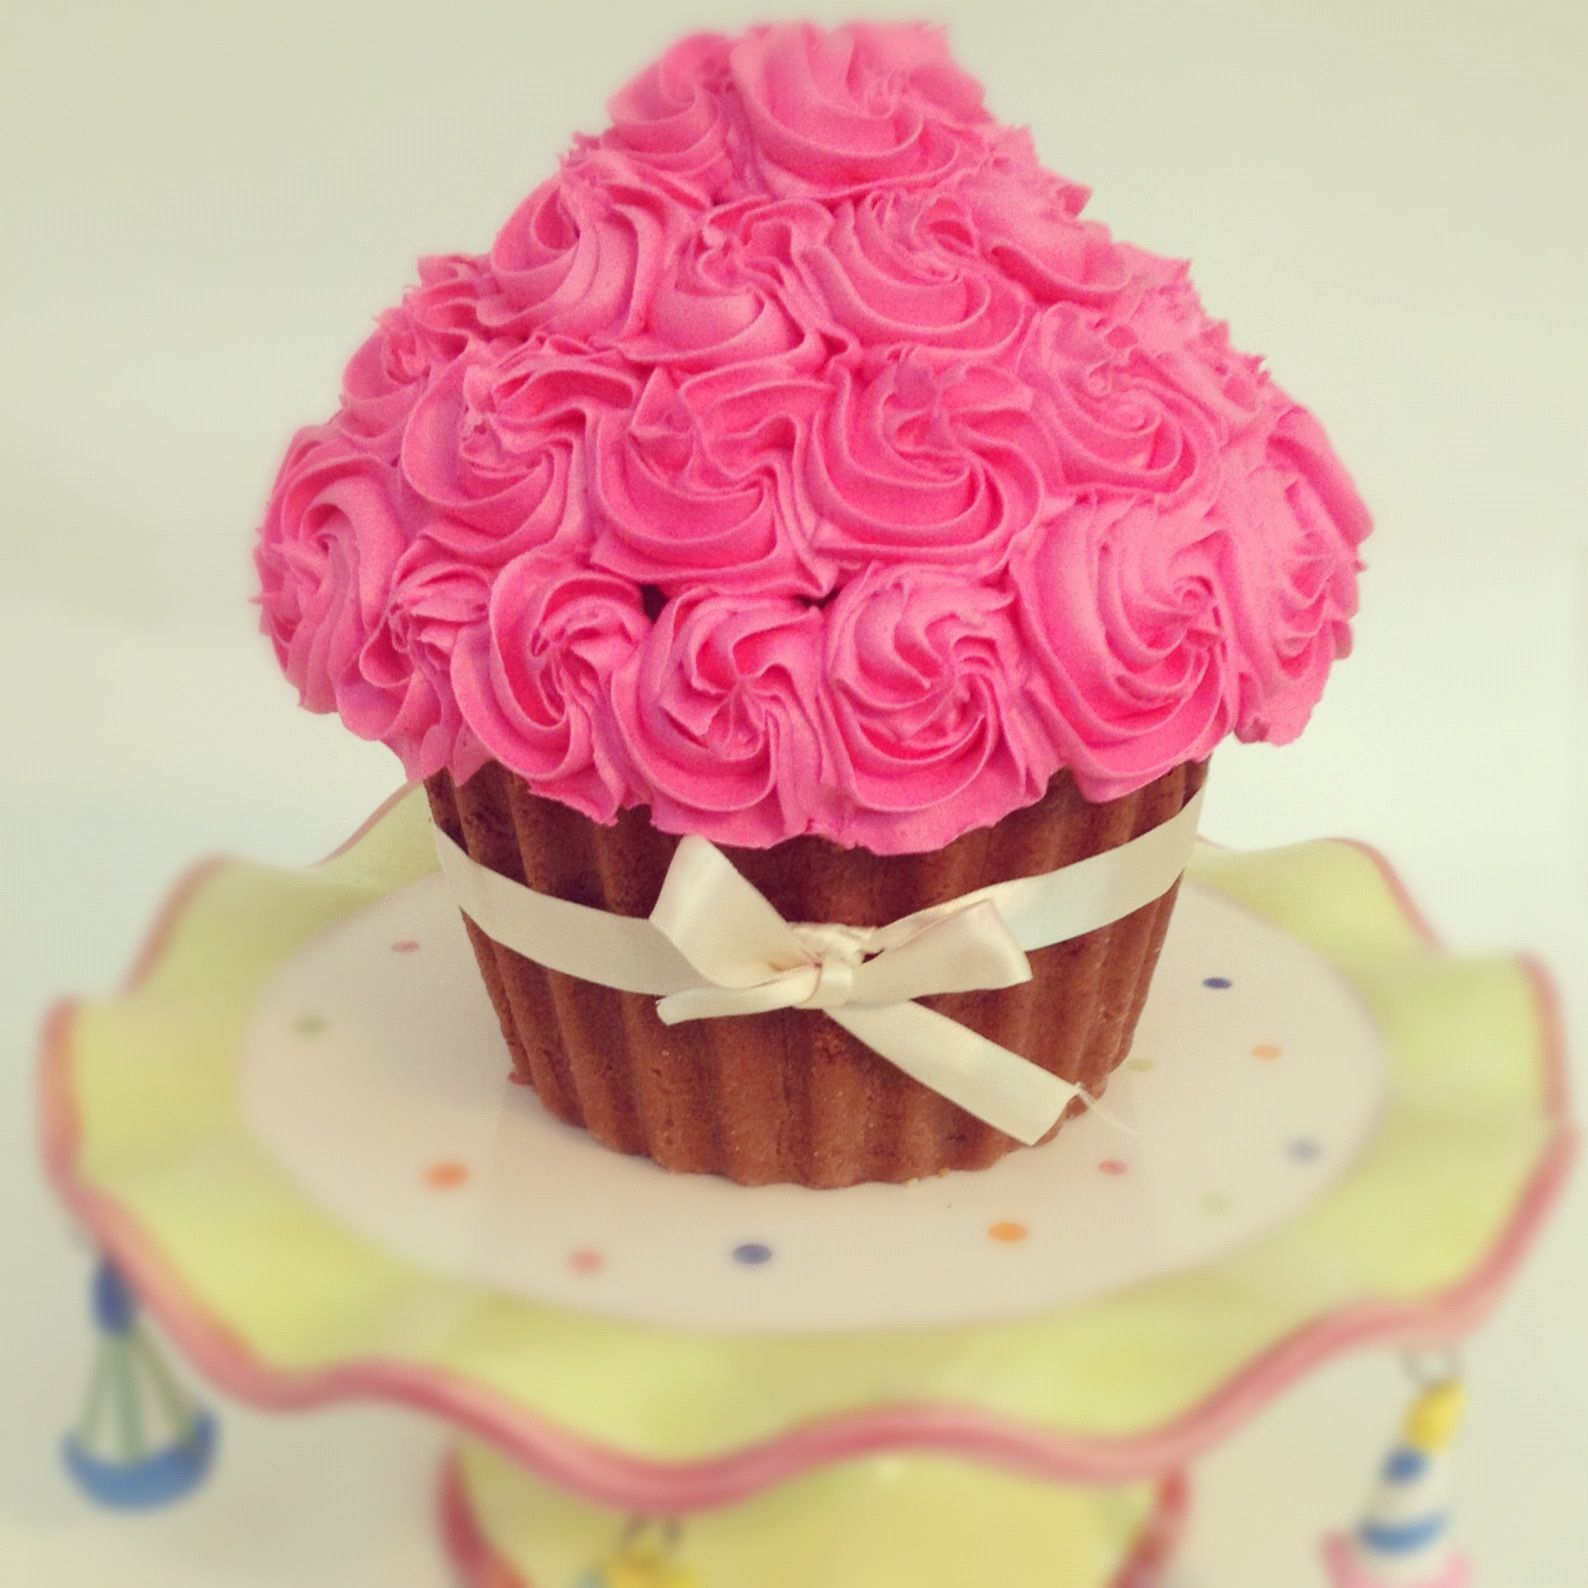 Cupcake Gigante Wedding Cakes And Cupcakes Cupcake Cakes